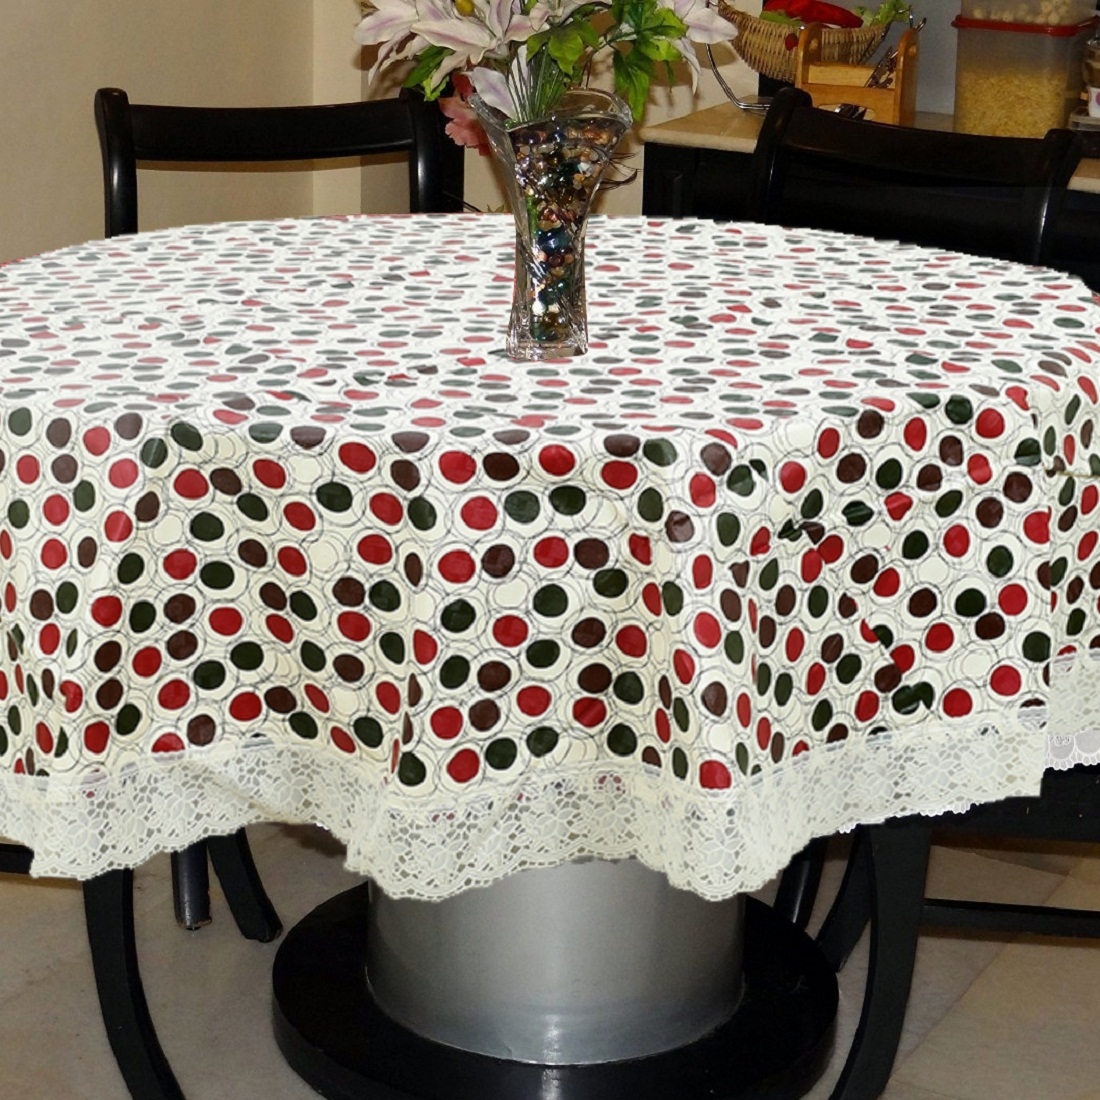 Kuber Industries Polka Dots Print Round, 60 Inch Round Tablecloth Disposable